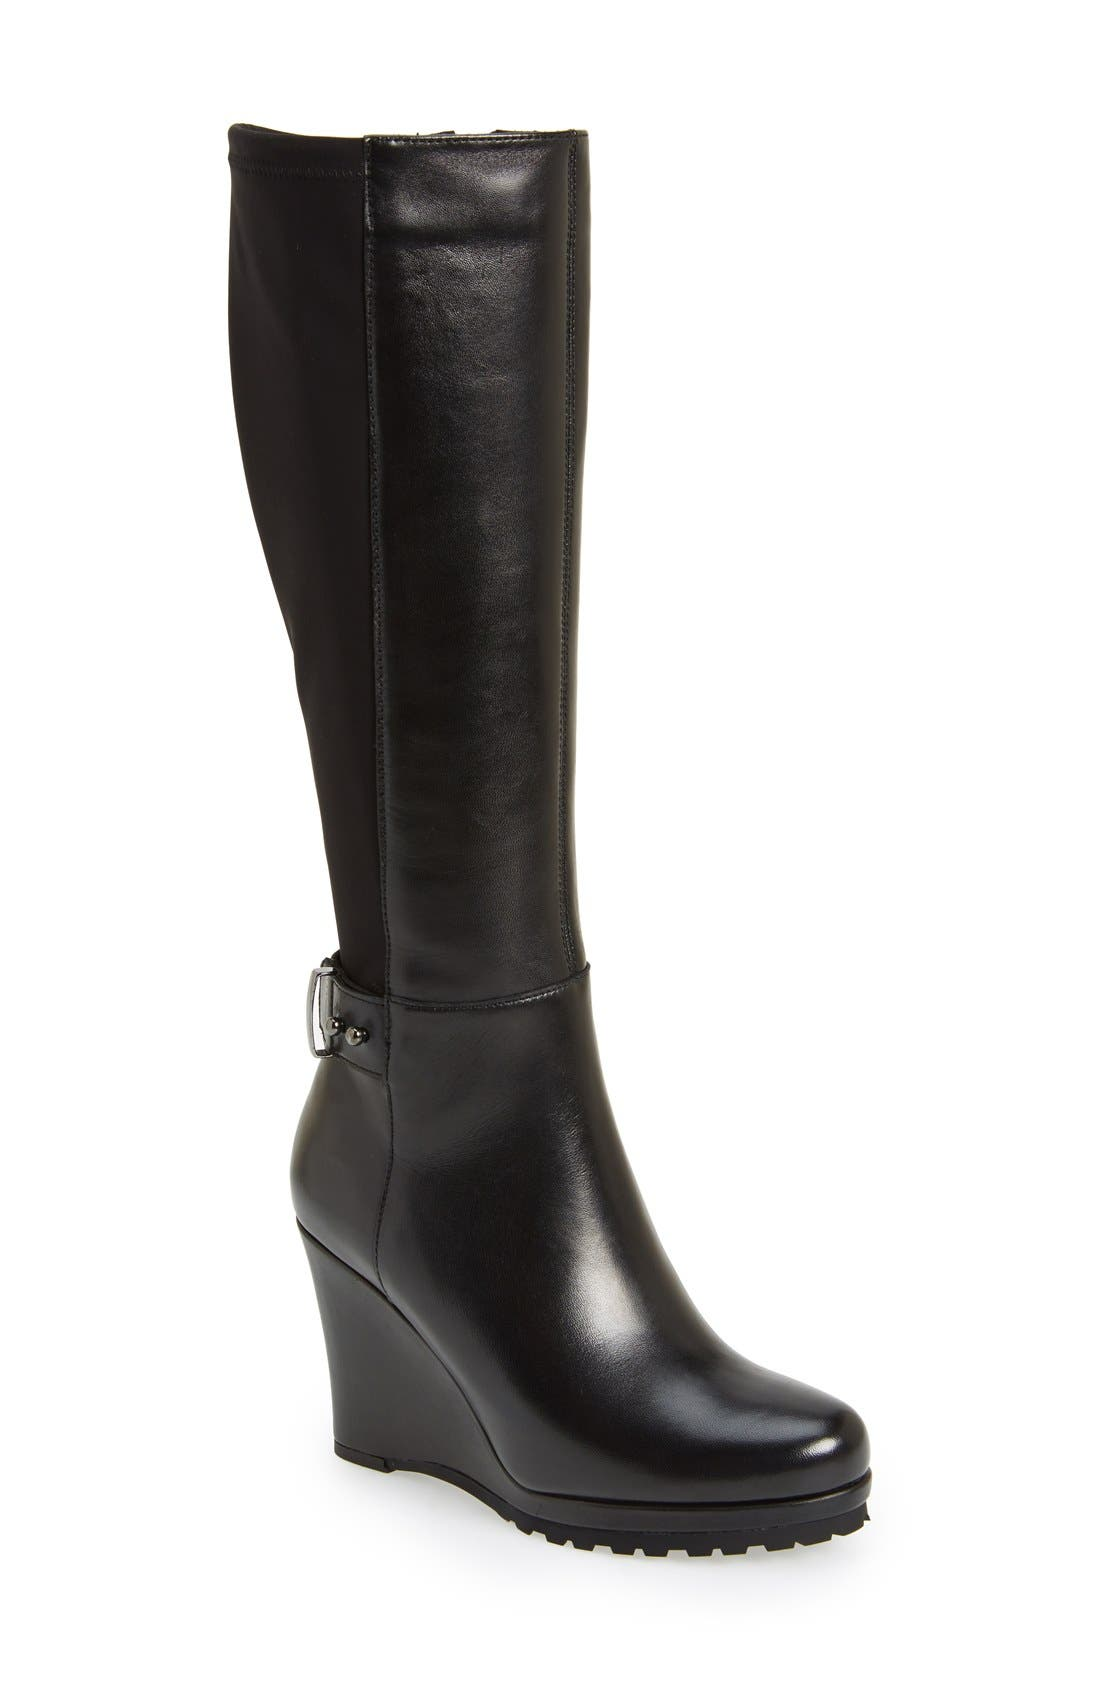 Alternate Image 1 Selected - VANELi 'Jaylene' Stretch Back Wedge Boot (Women)